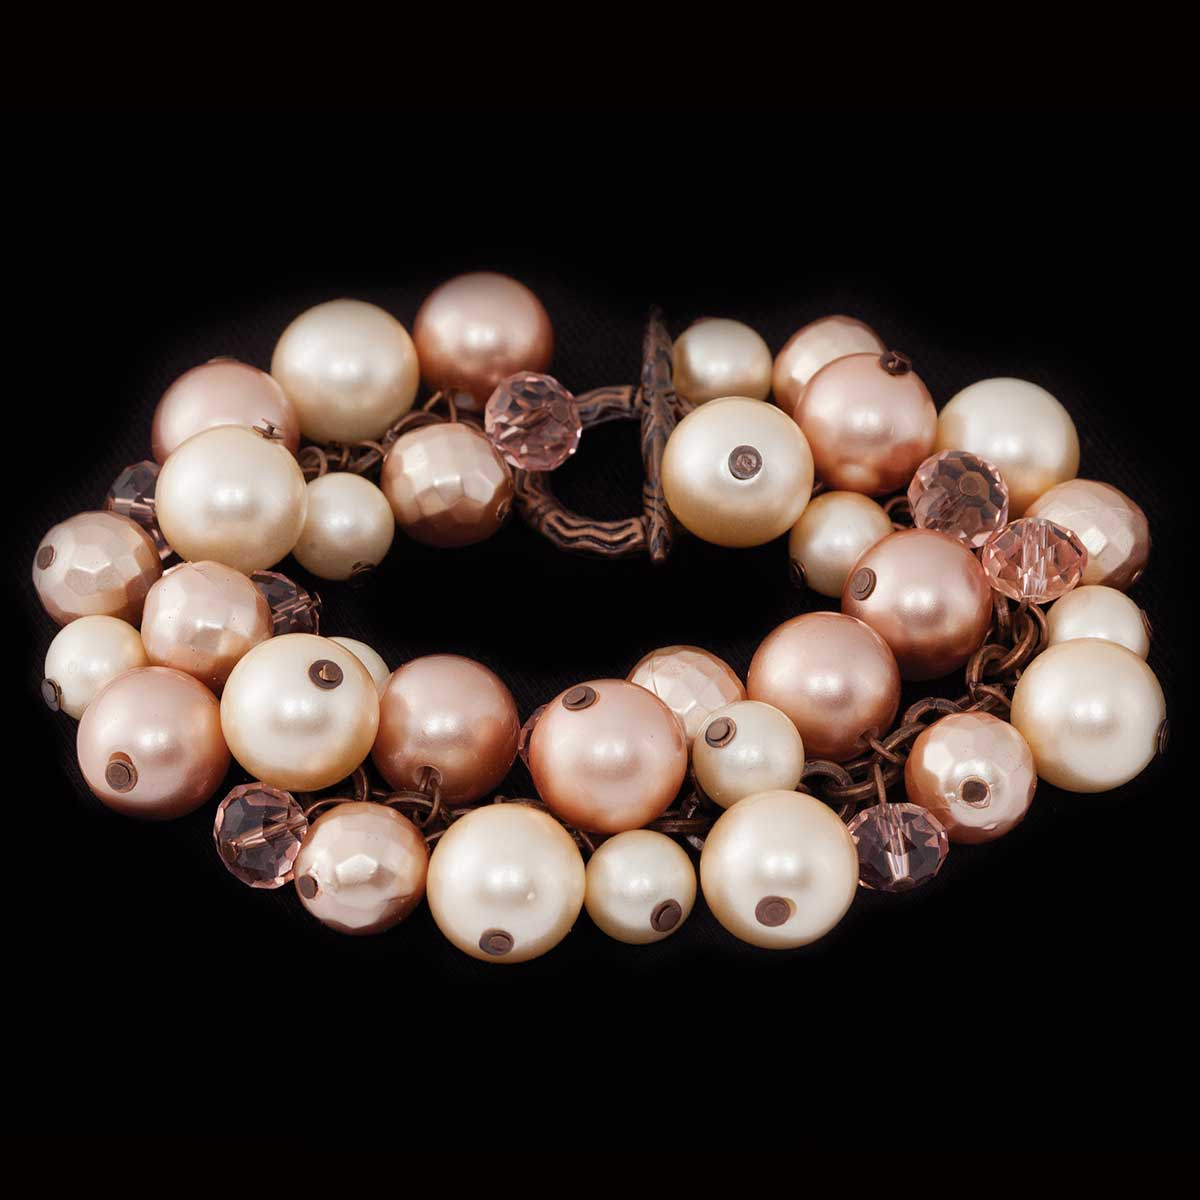 COPPERTONE/PEARLIZED BEADS/ROSE COLORS BRACELET WITH TOGGLE